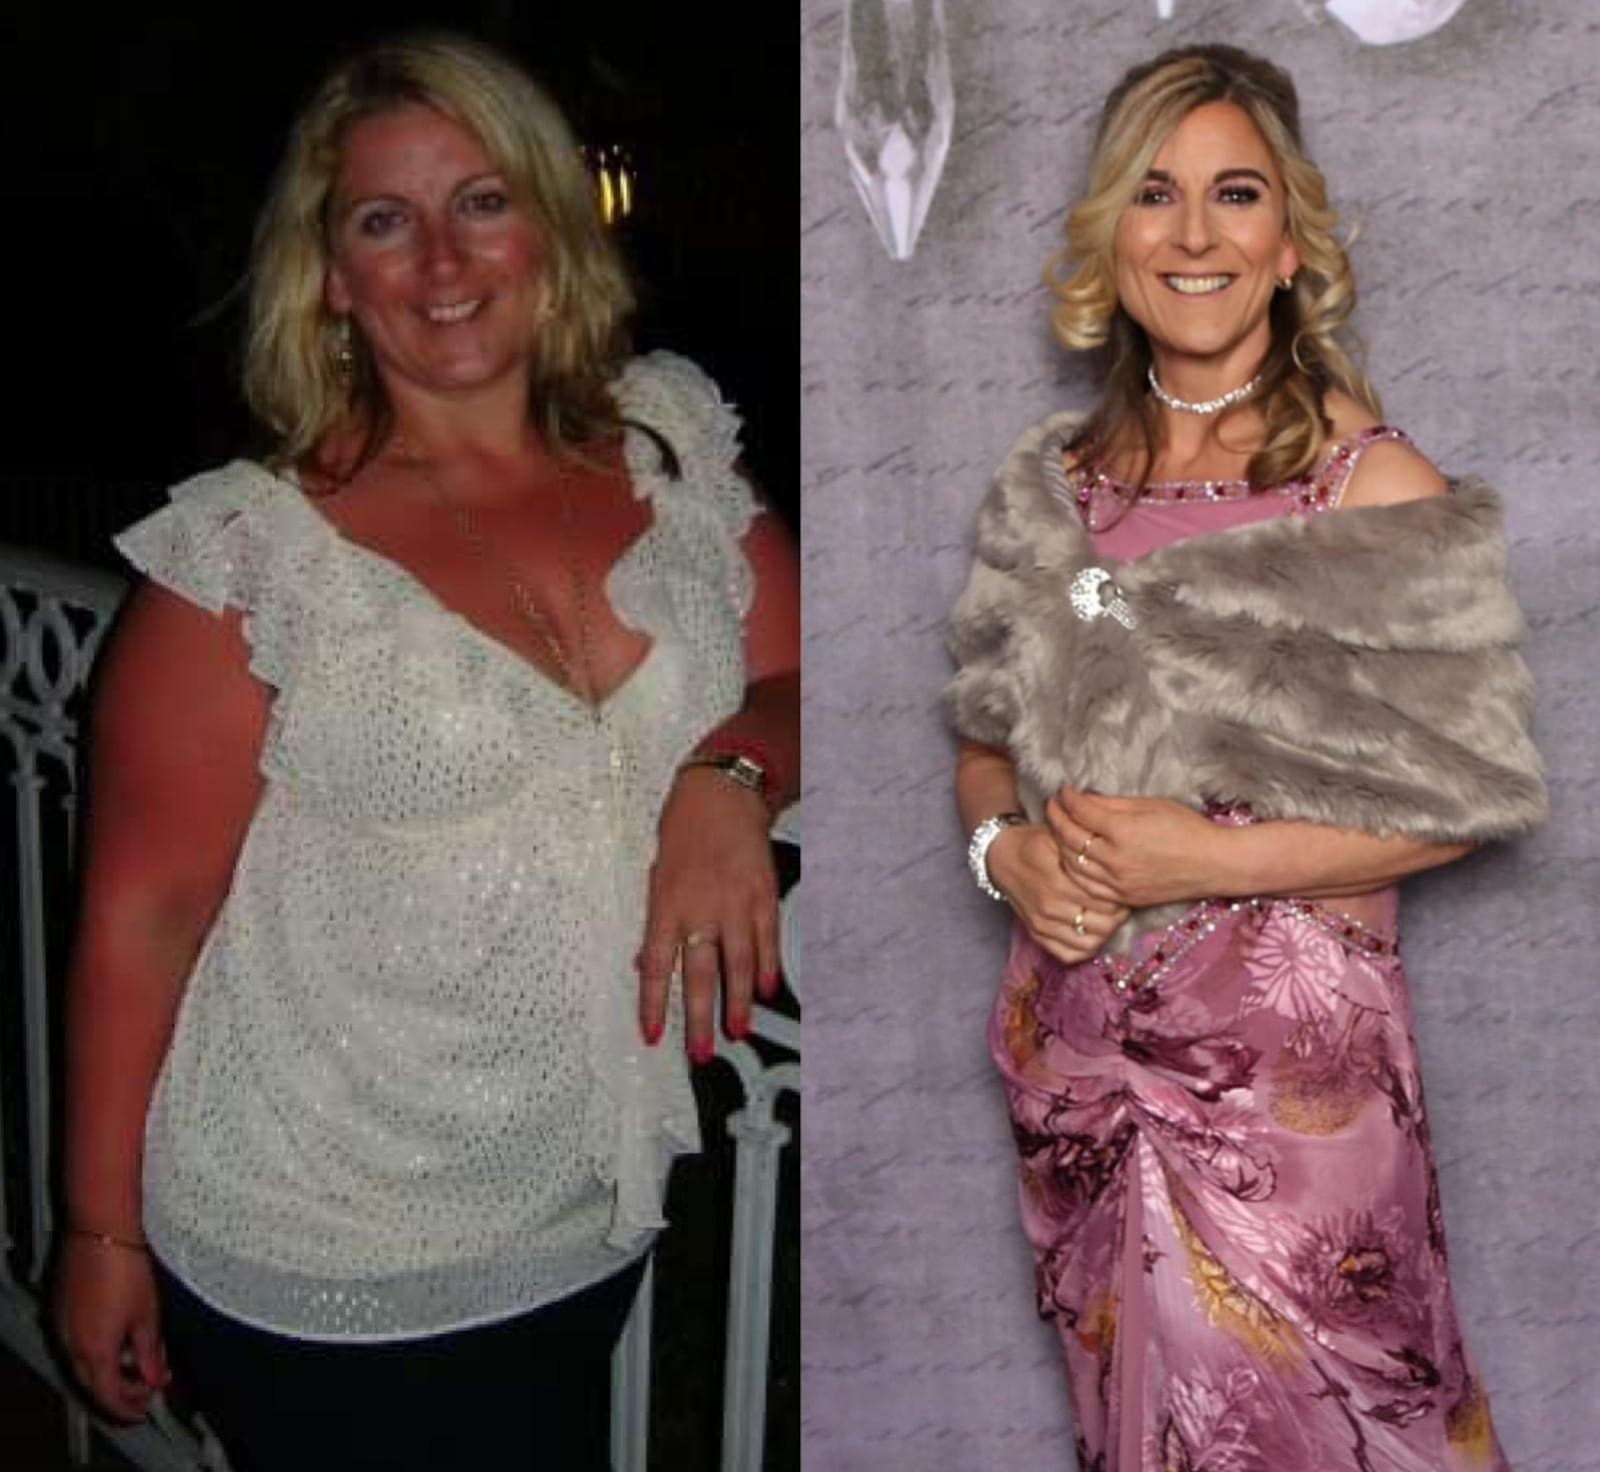 Southport Slimming World consultant Dee Wright, before and after her weight loss transformation